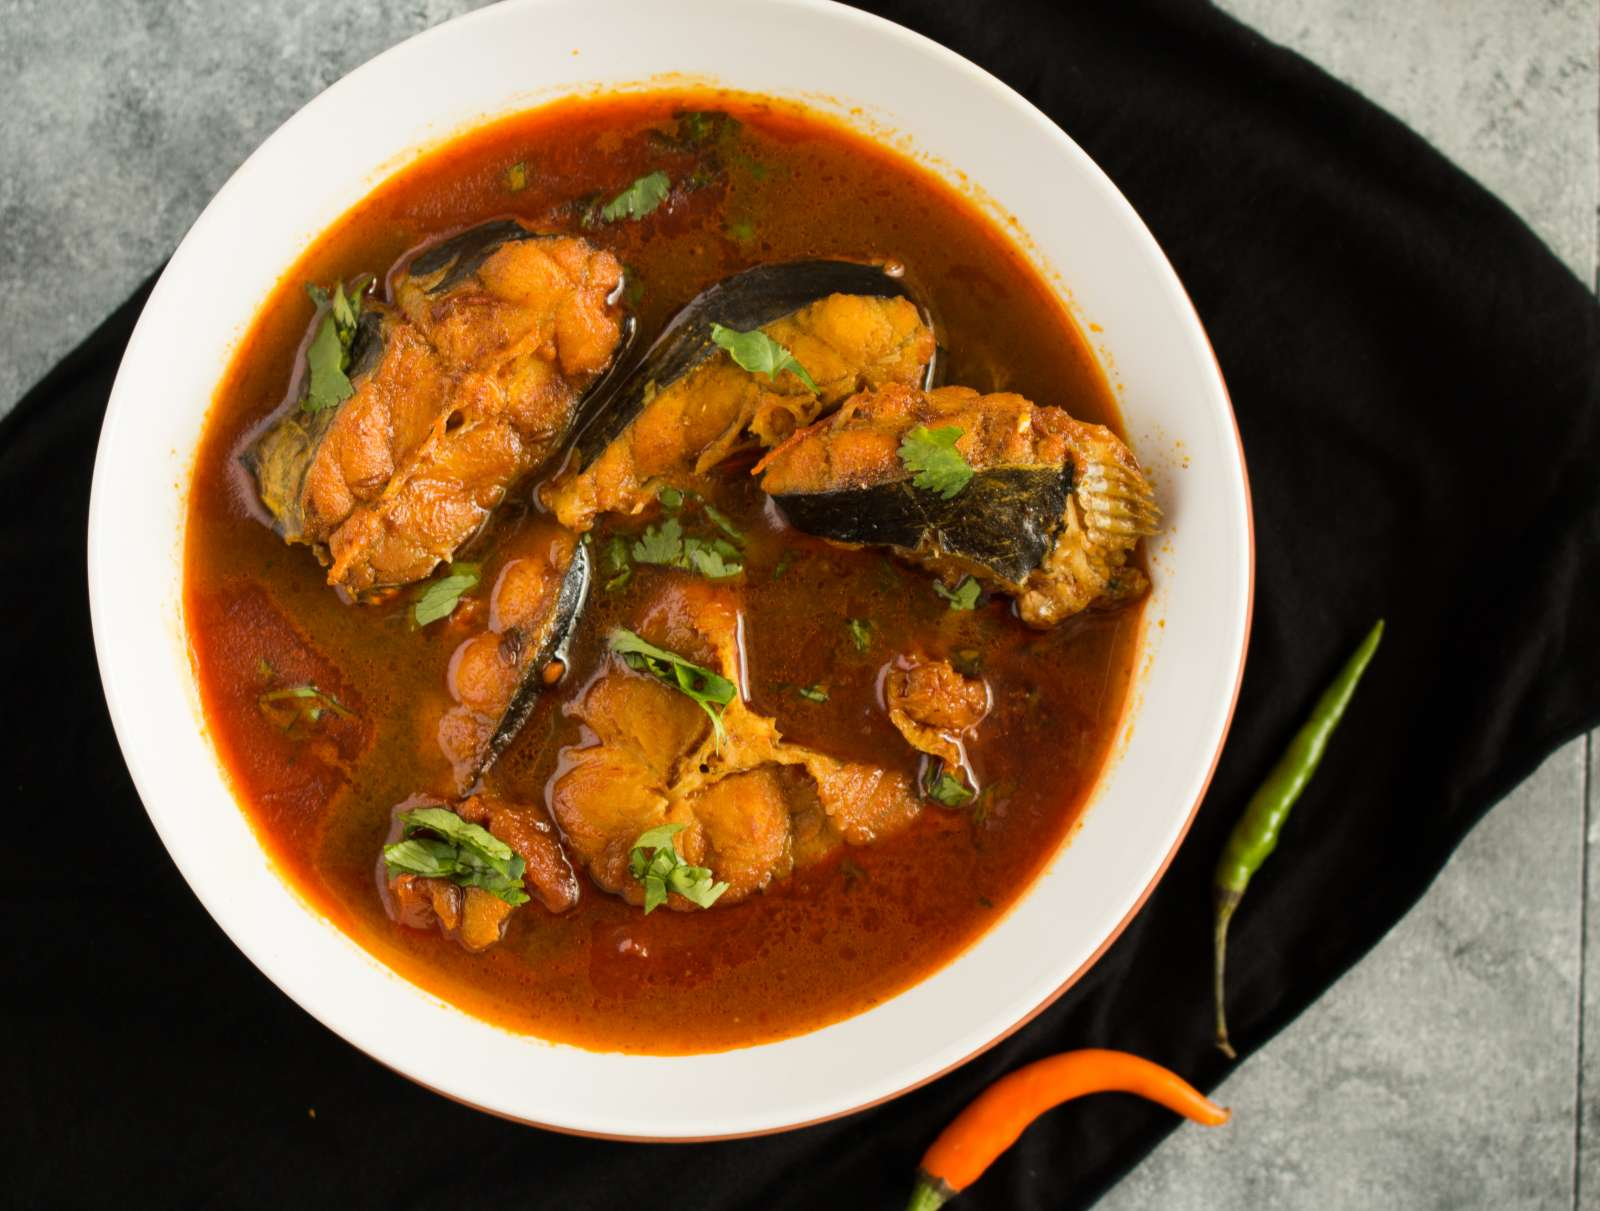 Bar Ideas For Kitchen Aar Macher Jhol Recipe Bengali Fish Curry By Archana S